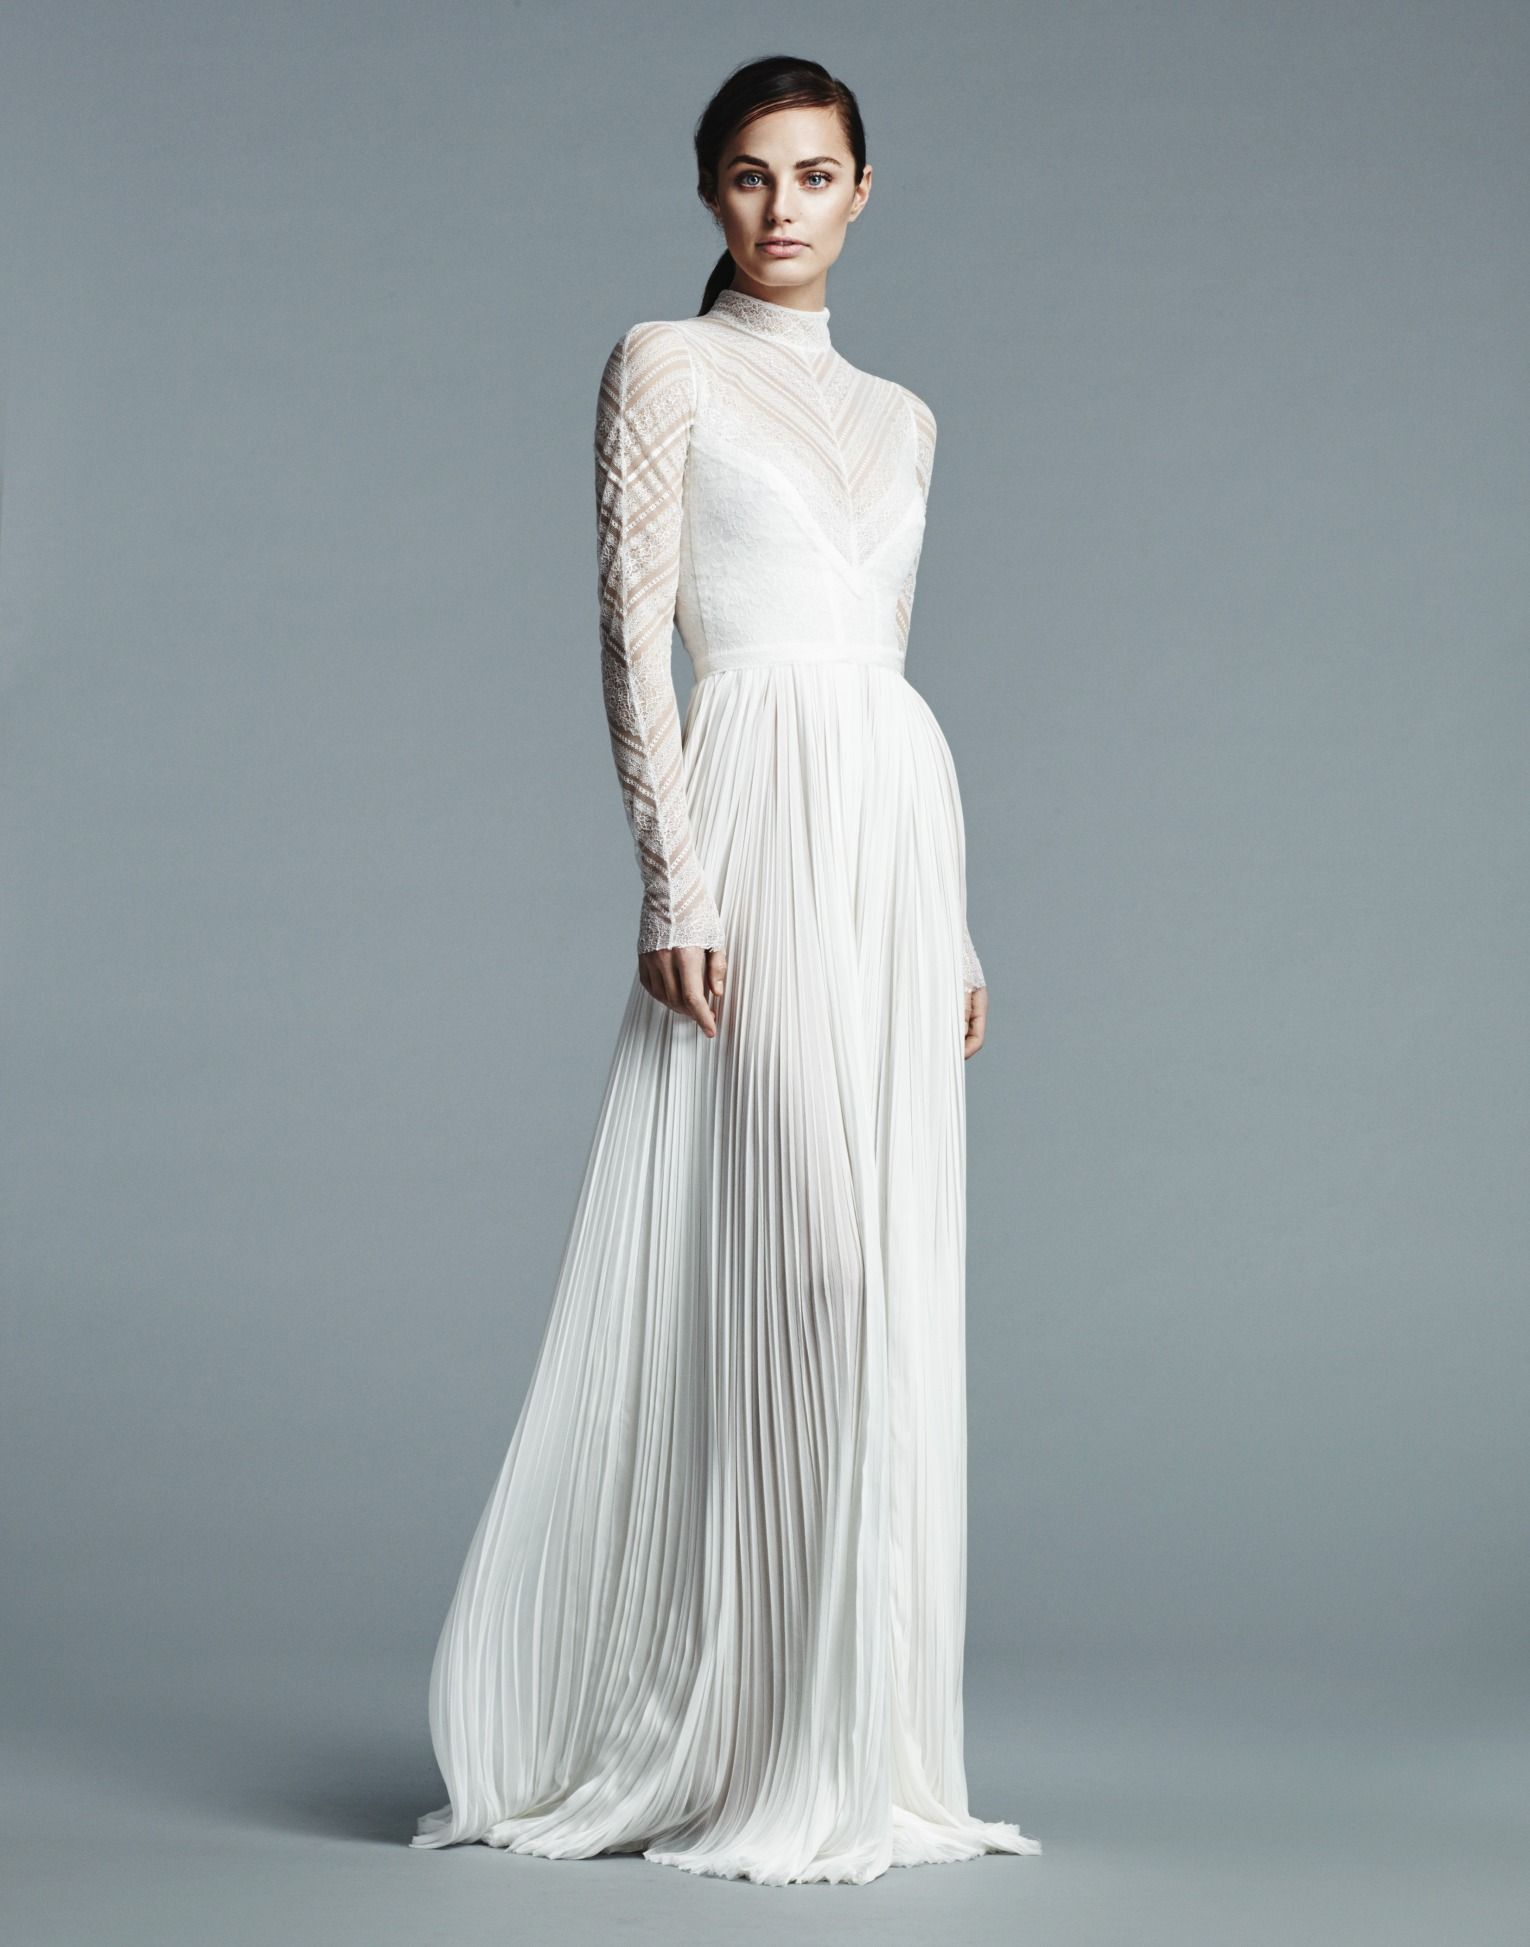 M\'O Bridal & Wedding: The Lily Gown from the J. Mendel Bridal SS17 ...